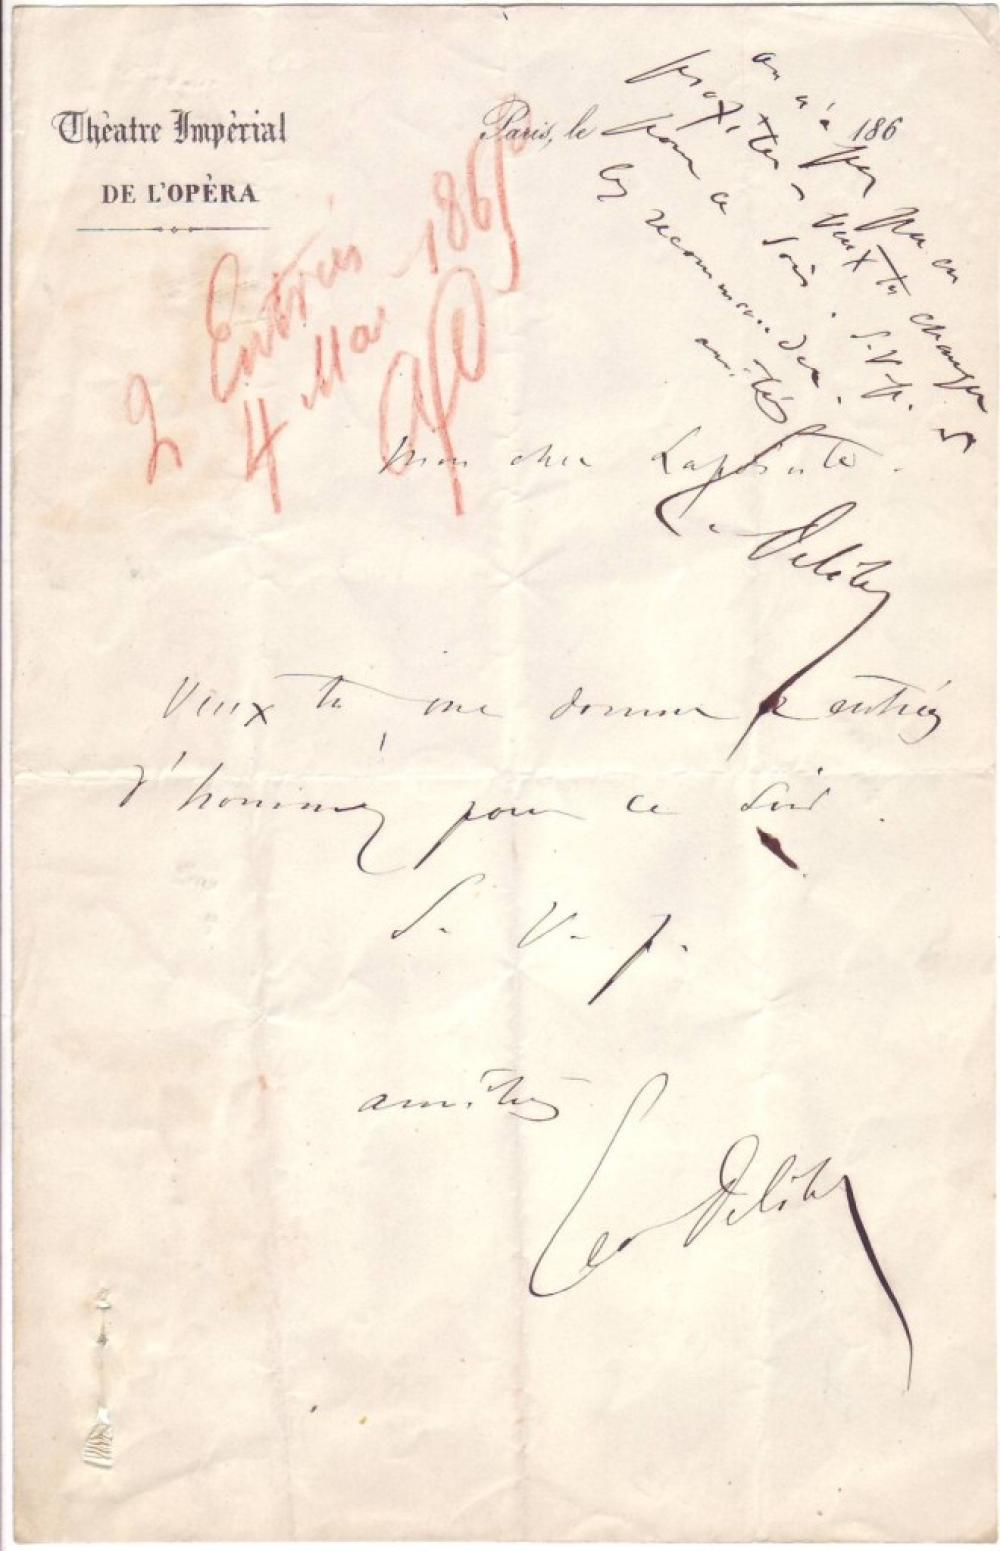 DELIBES, LÉO. Autograph Note Signed, to